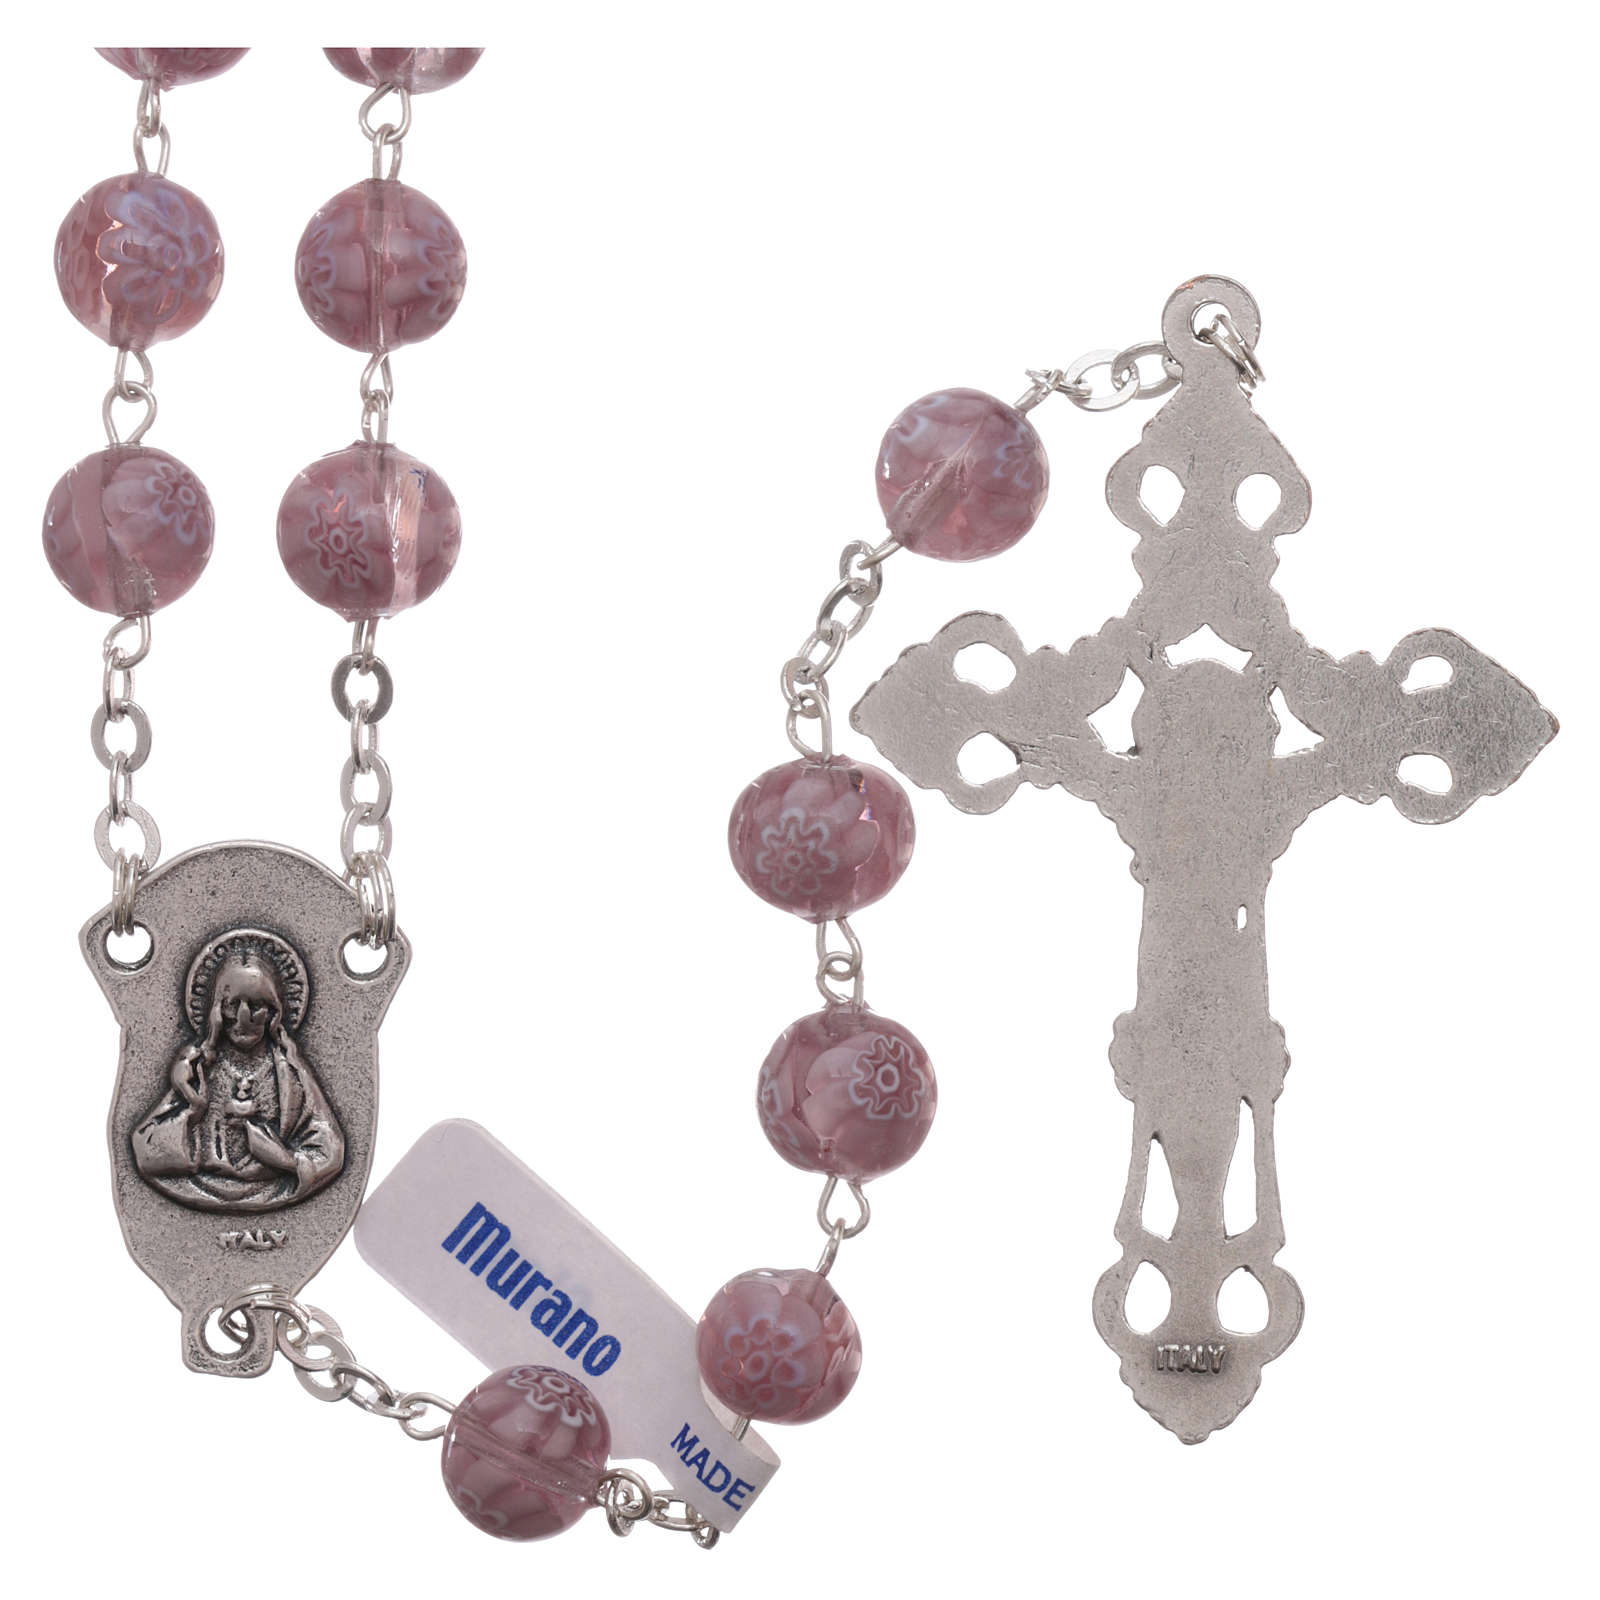 Murano glass style amethyst color rosary beads, 8mm 4